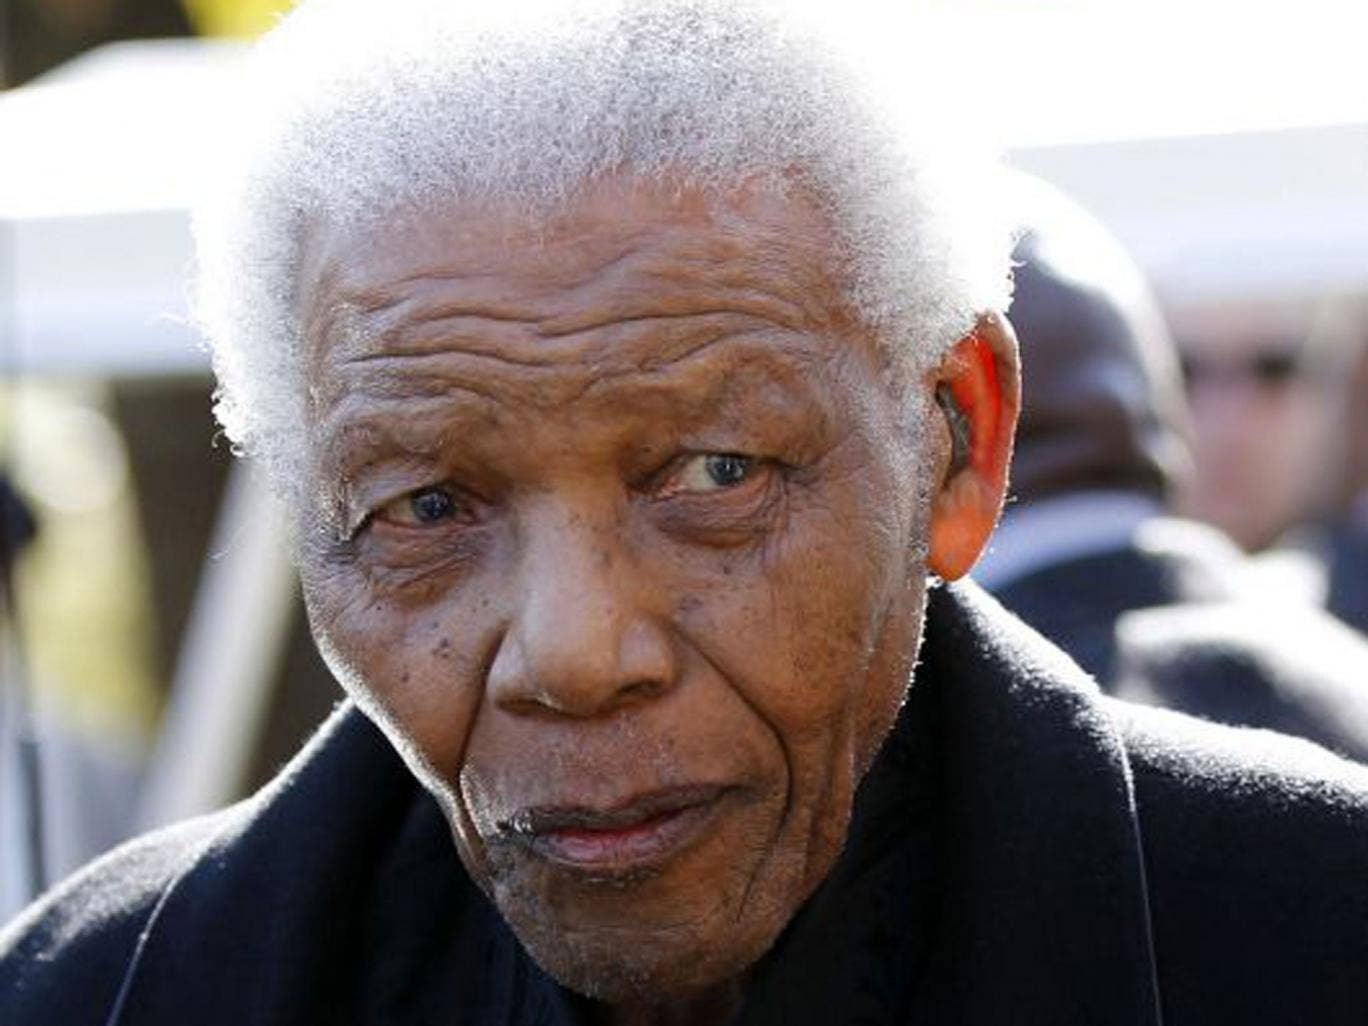 President Jacob Zuma said Mr Mandela remains in a serious condition but that over the last two days his doctors have said the improvements in his health have been sustained.